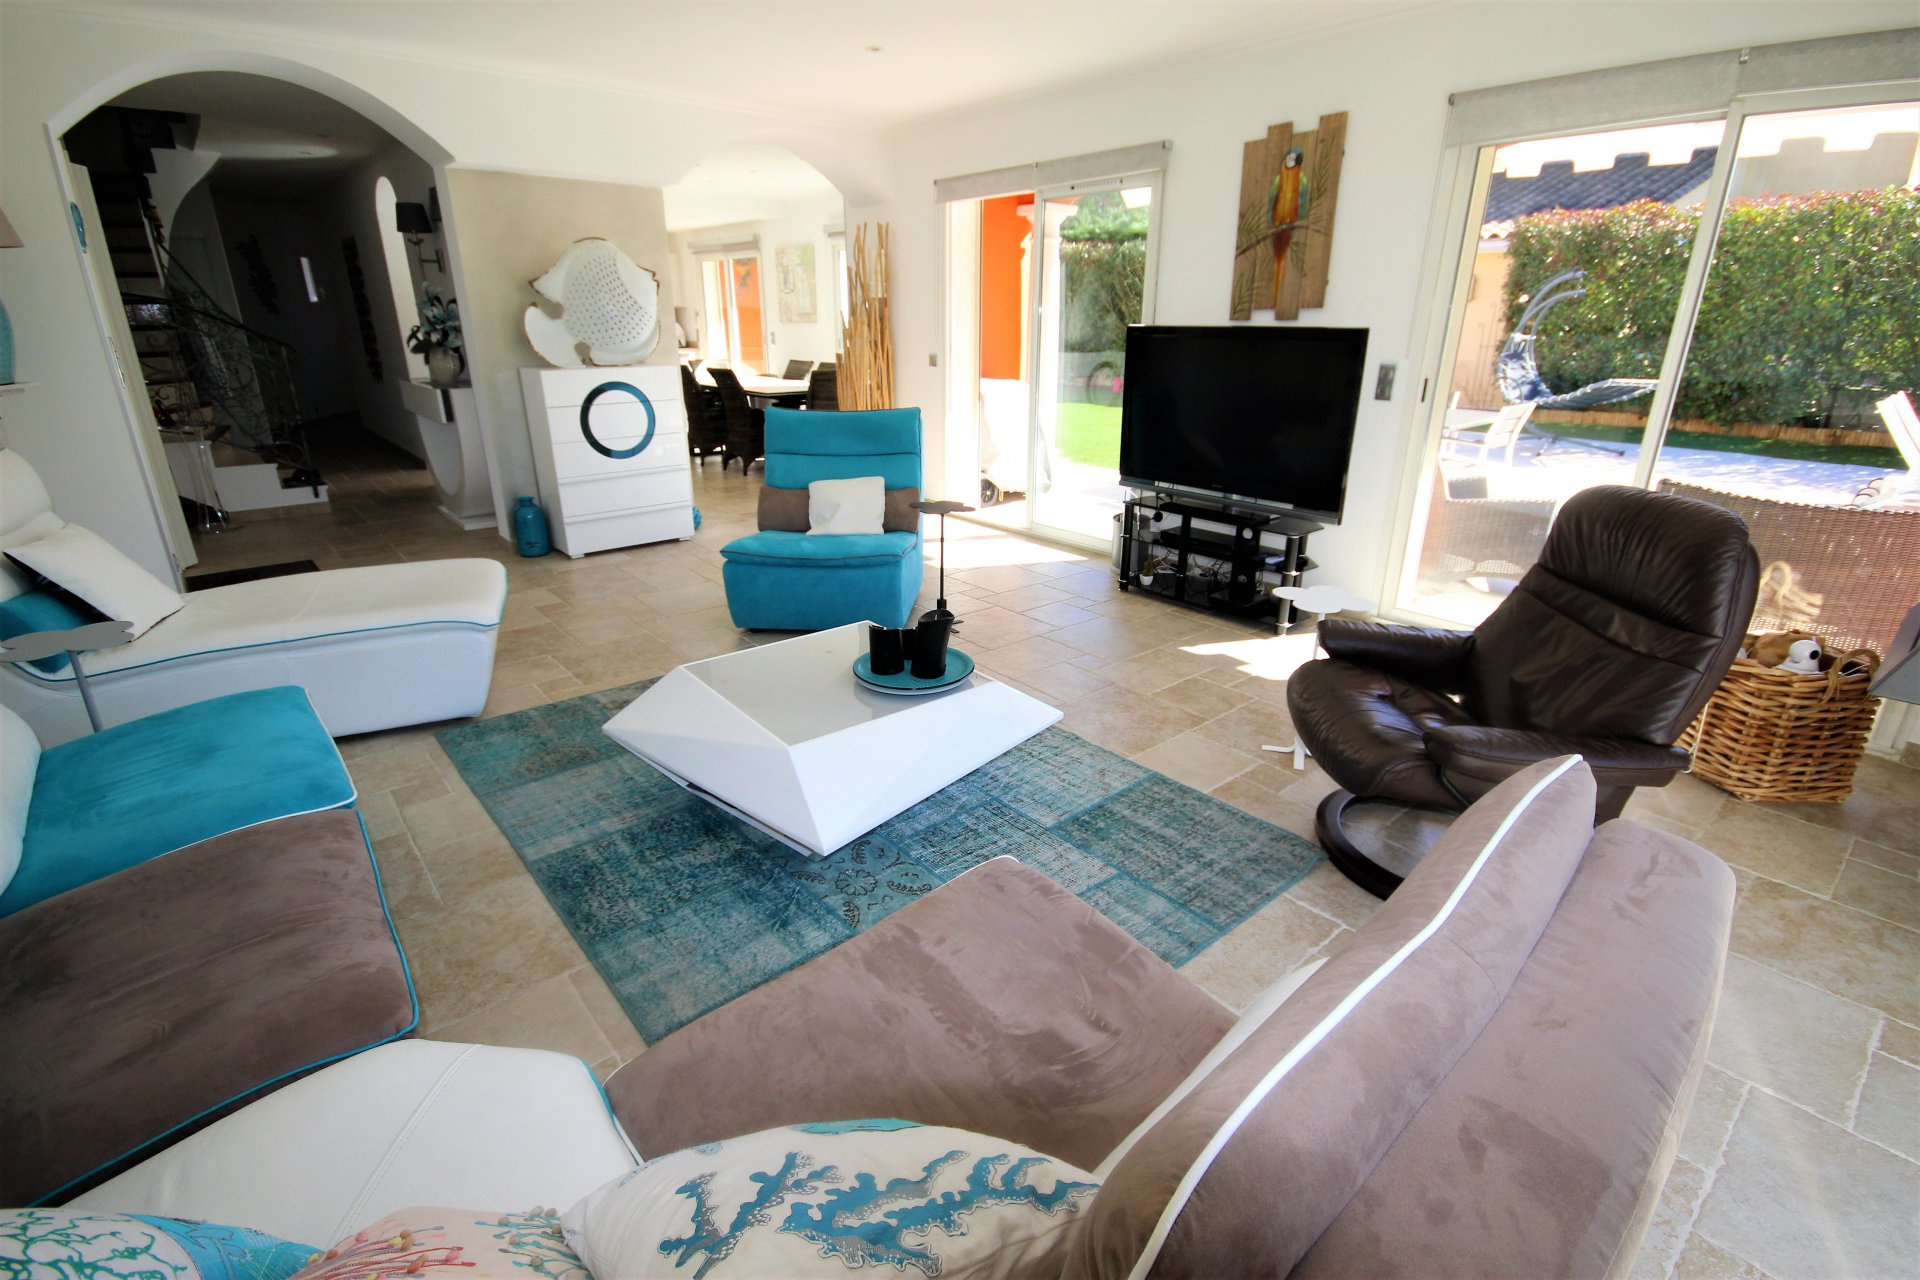 MOUGINS VILLA 4 ROOMS WITH SWIMMING POOL CLOSE TO SHOPS